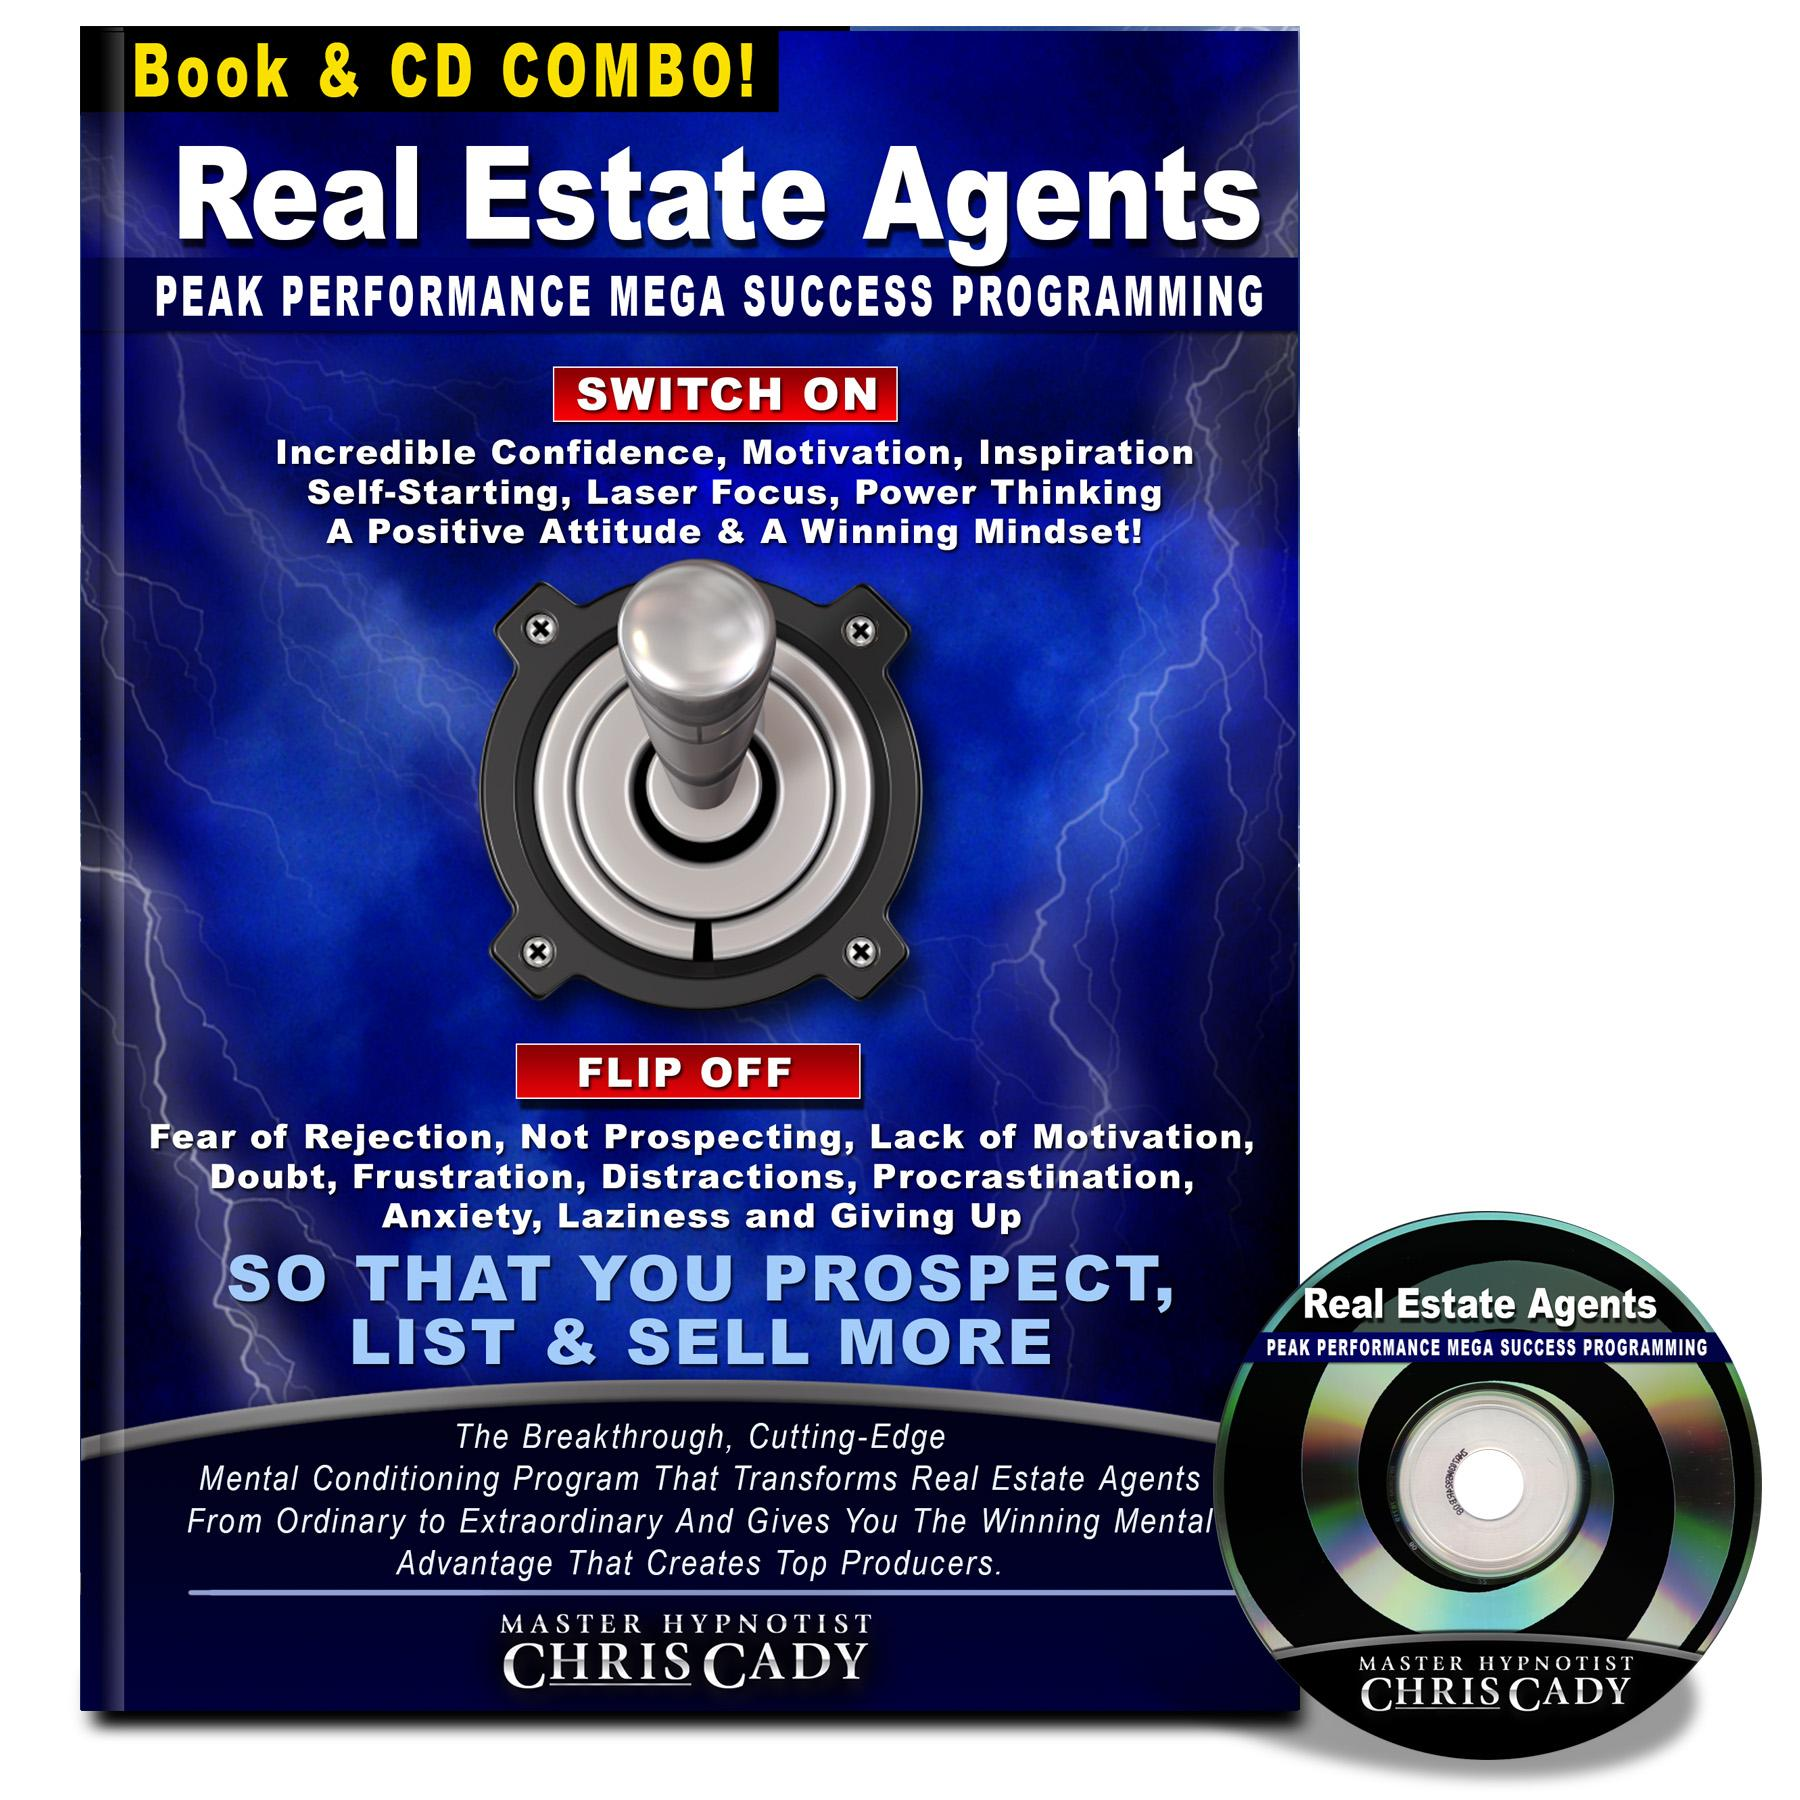 hypnosis for real estate agents self confidence success hypnosis cd and book cover